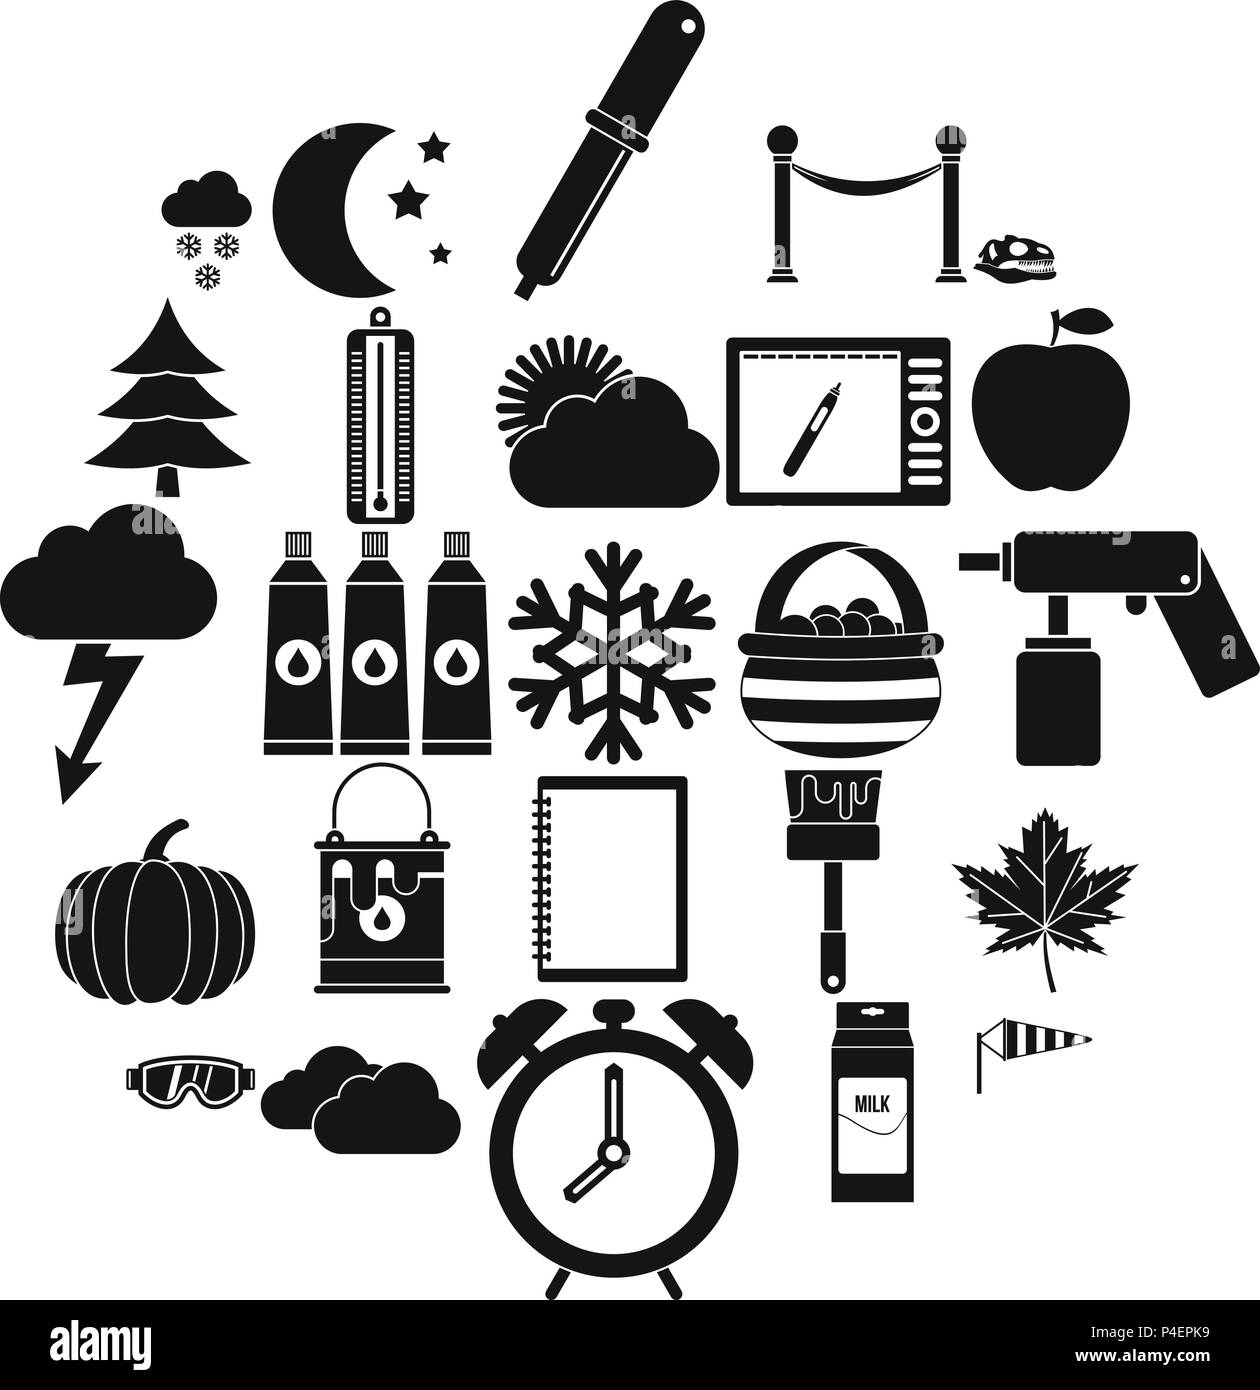 Portrayal icons set, simple style - Stock Image